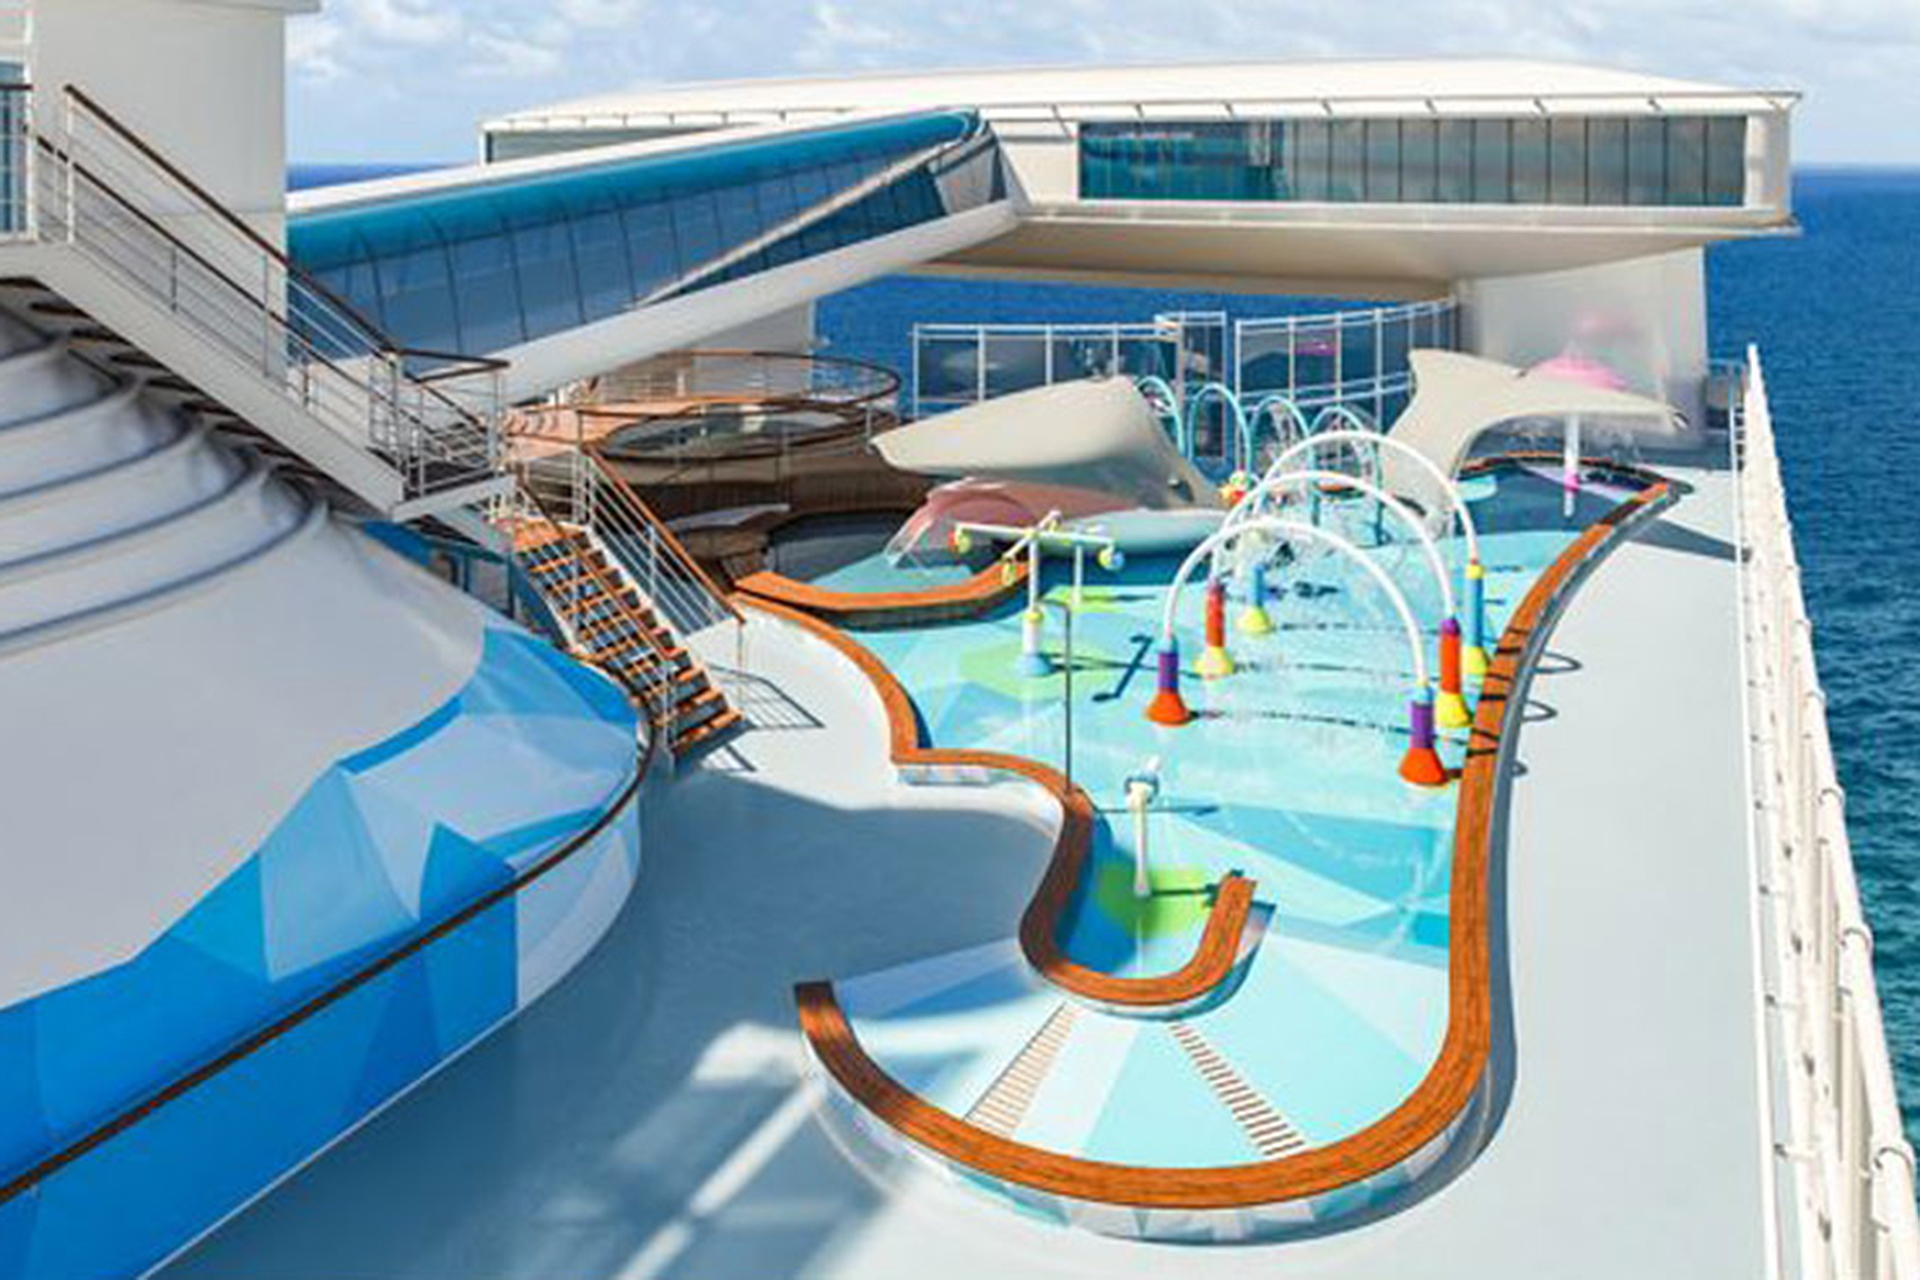 Rendering of Reef Family Splash Zone on Princess Cruises' Caribbean Princess; Courtesy of Princess Cruises